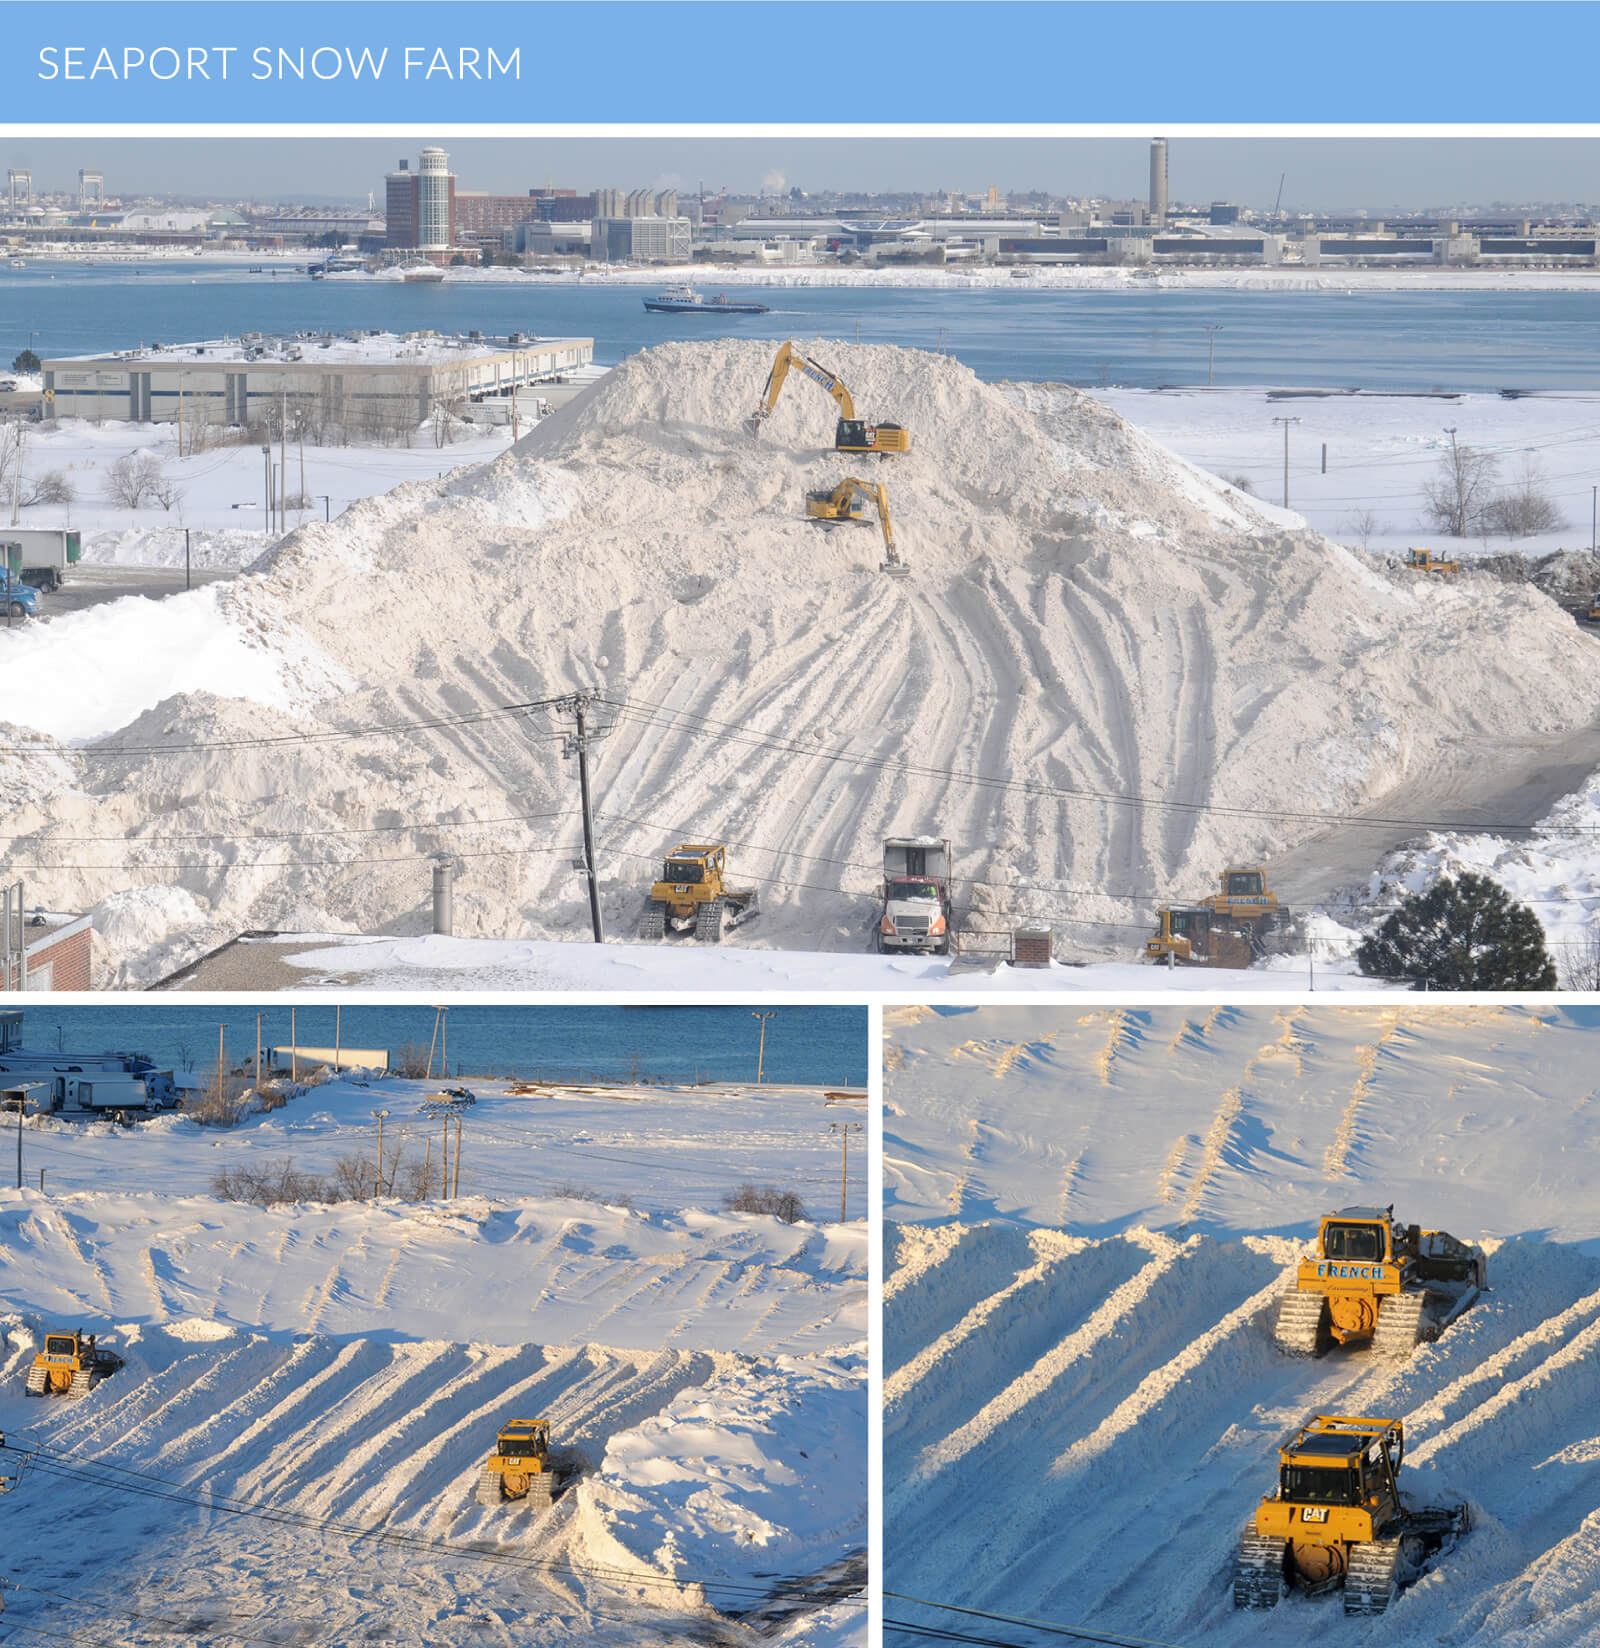 Seaport Snow Farm